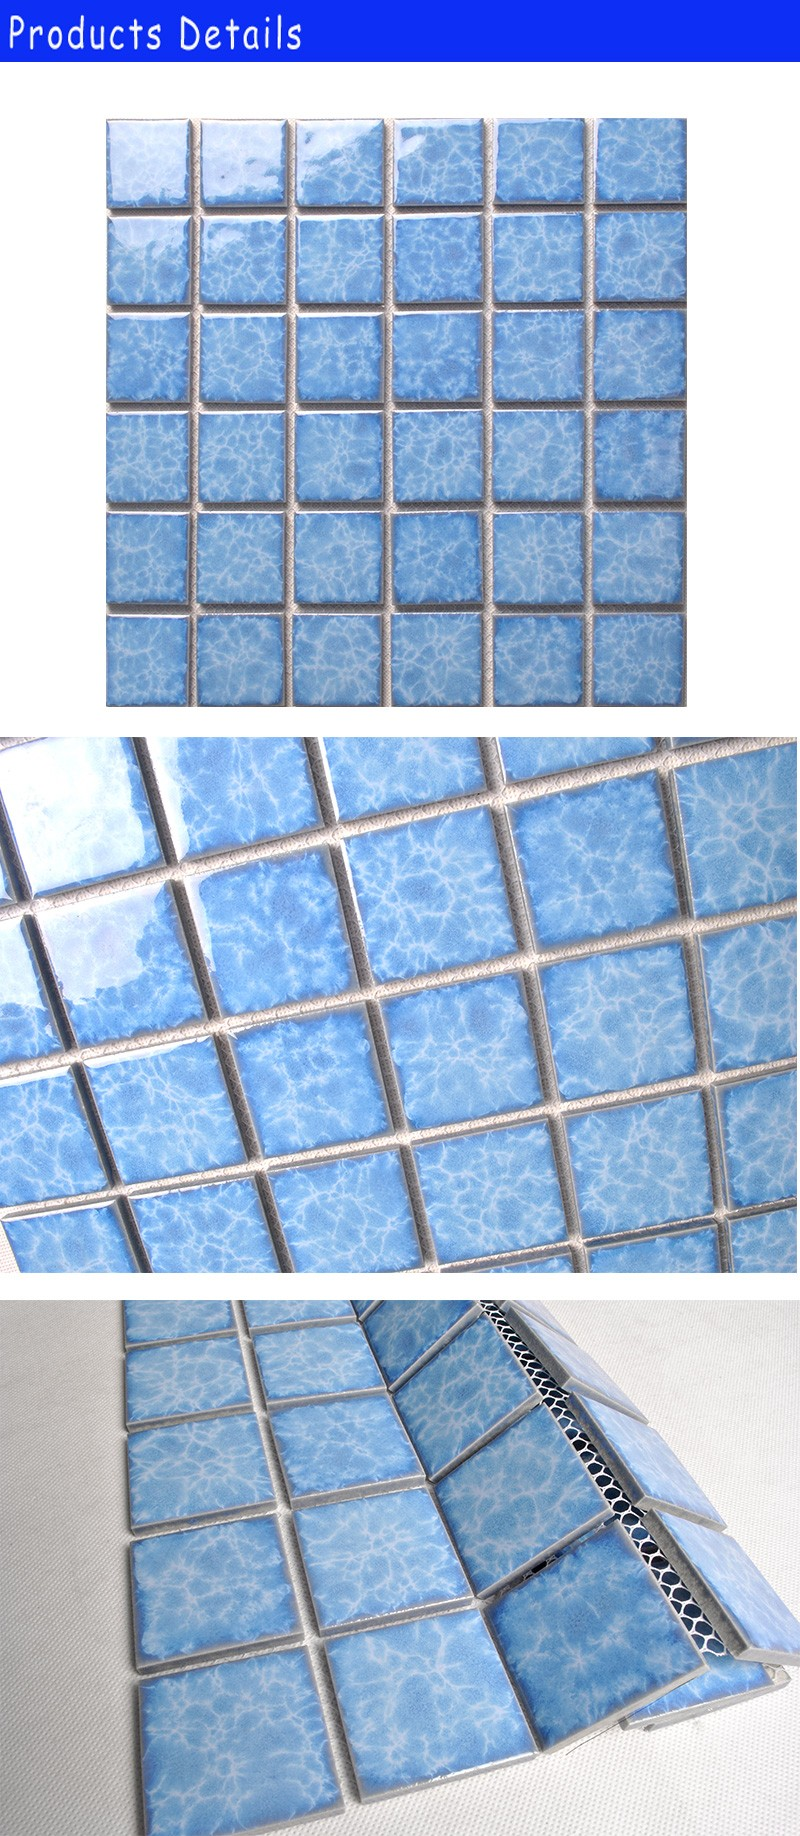 online discount 2 x 2 inch mosaic ceramic tile for swimming pools ...